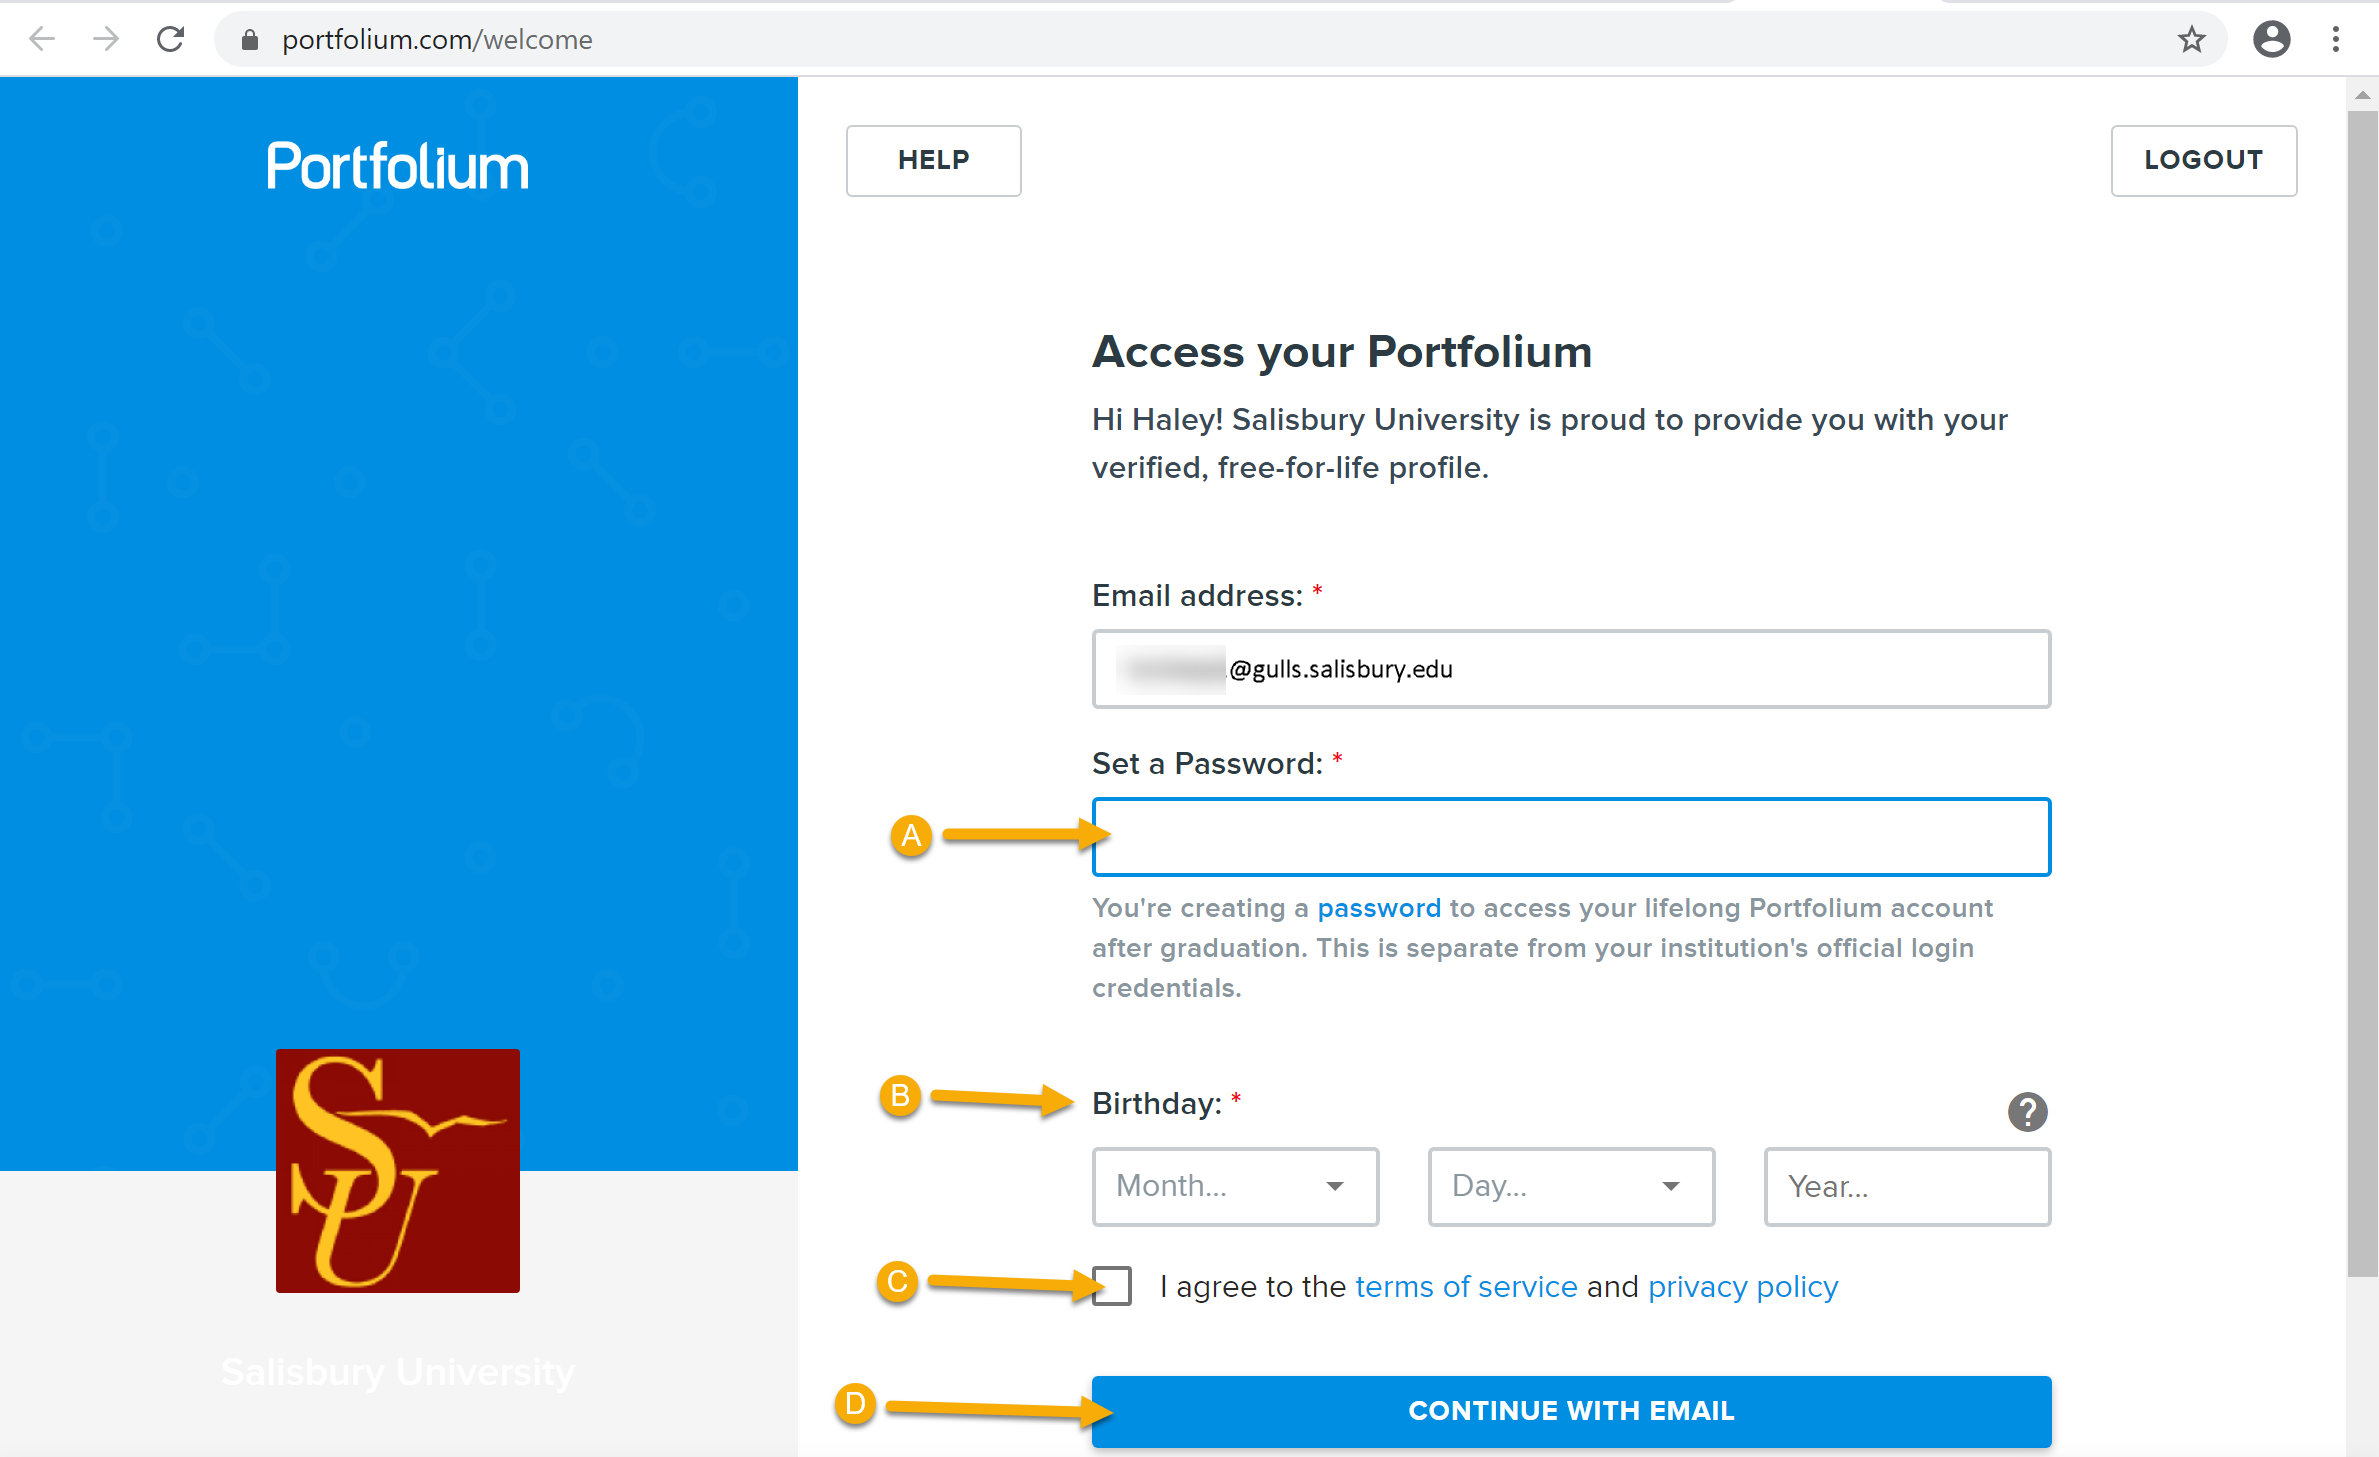 Portfolium authorization with the SU email autofilled. Additional prompts require creating a password, adding a birthdate, accepting Portfolium policies, and continuing to Portfolium.com when the information is entered.